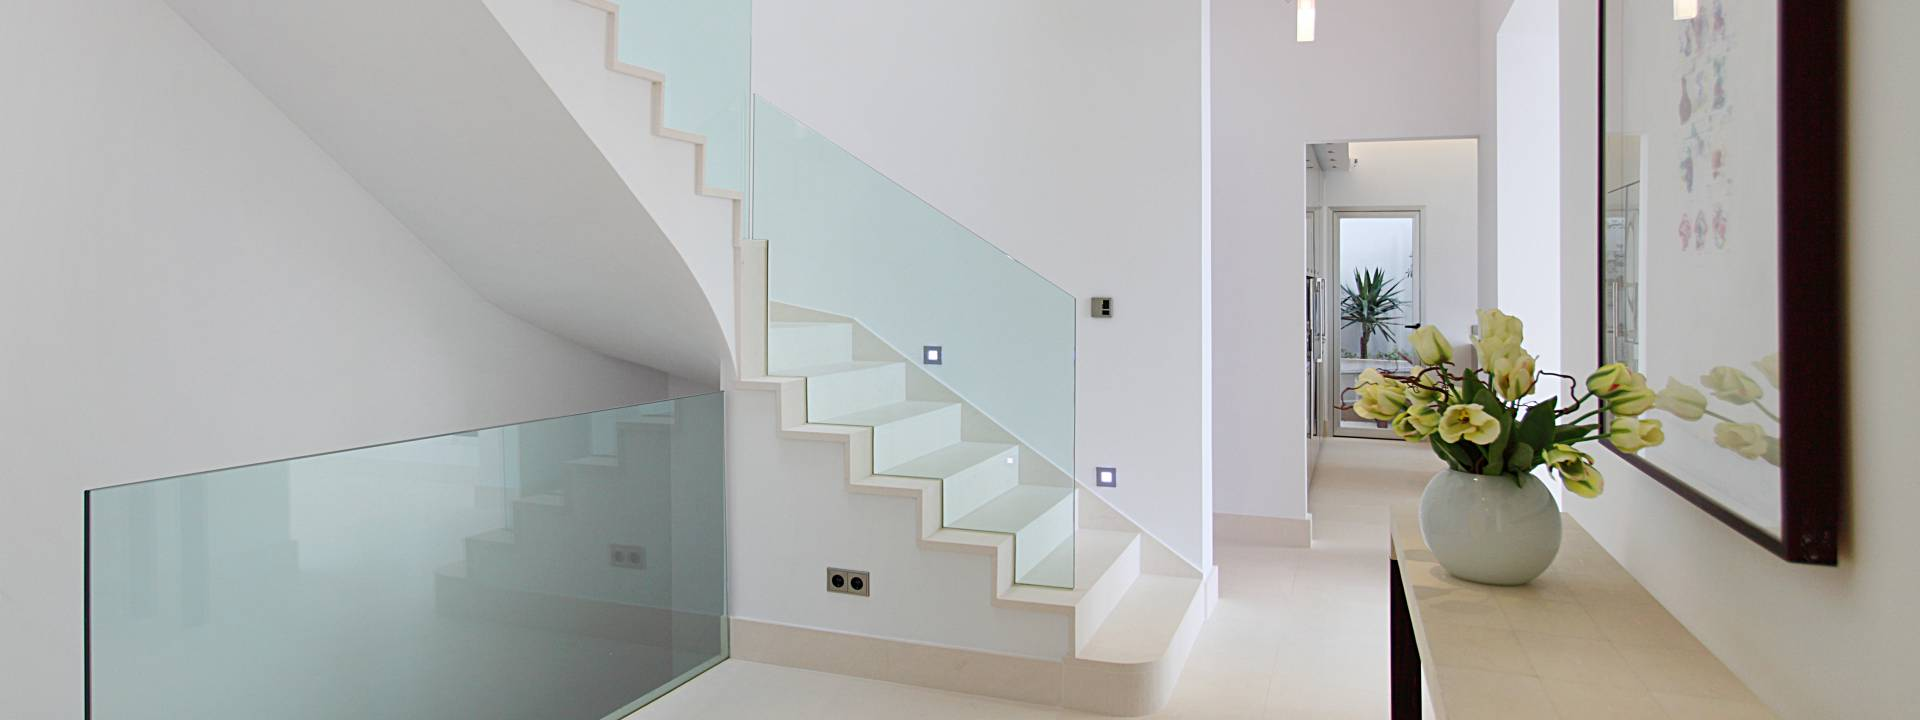 Luxury-villa-Mallorca-glass-staircase-interior-design